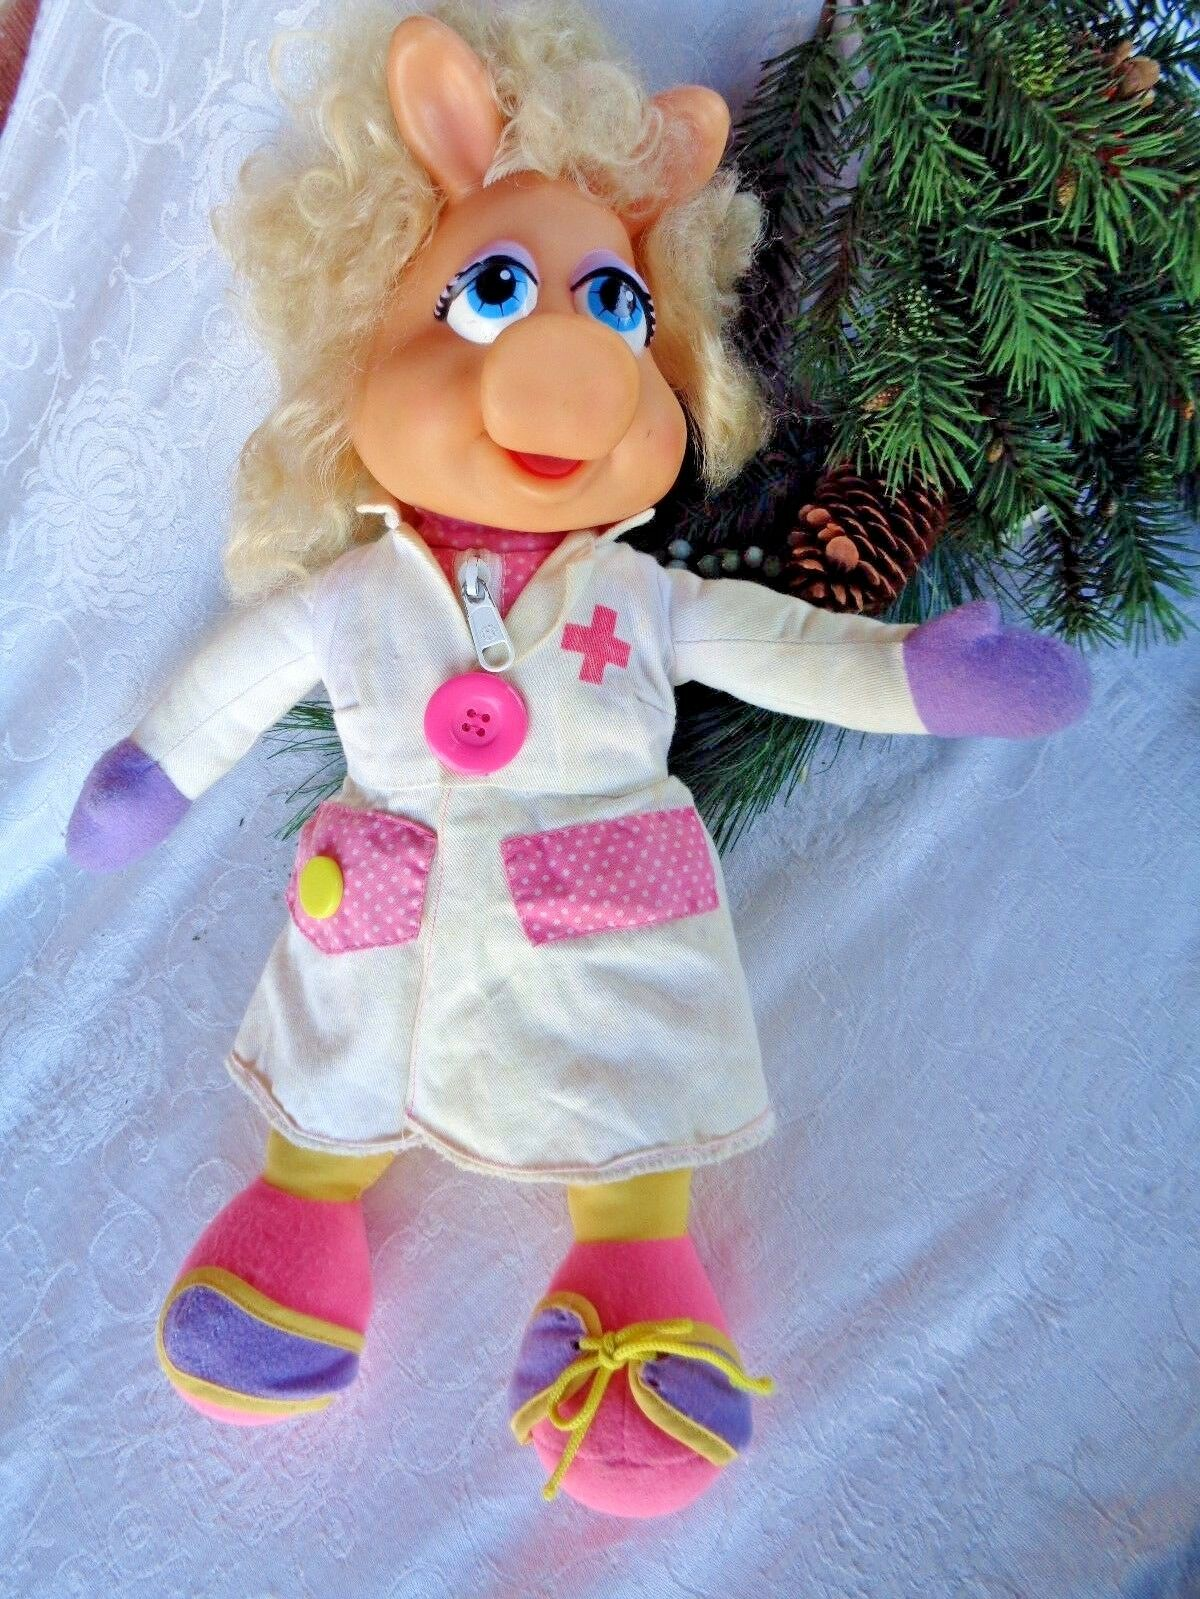 Miss Piggy Doll Muppets Learn to Dress Jim Henson's